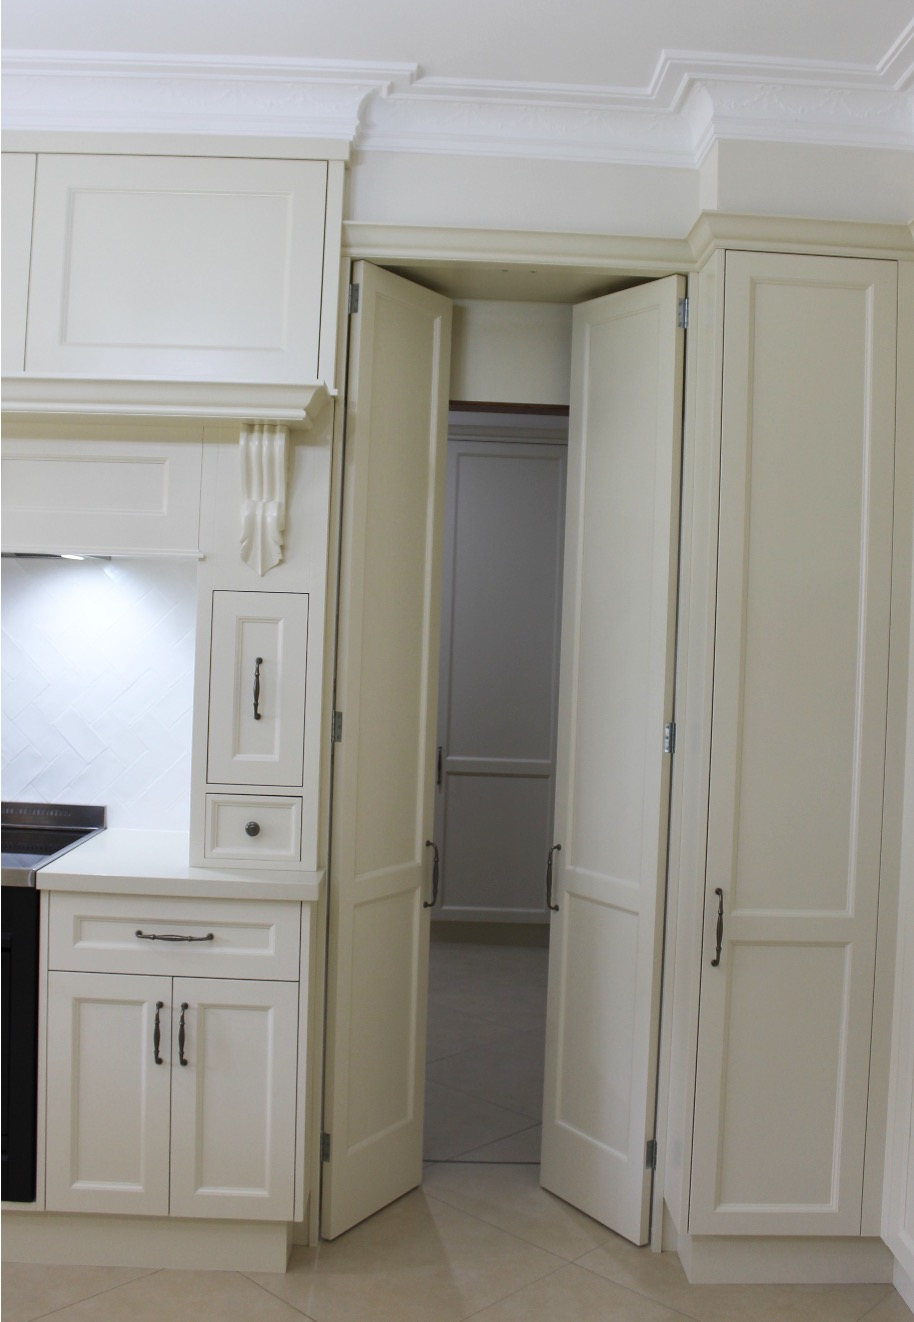 Kitchen Design - Walk-in Laundry